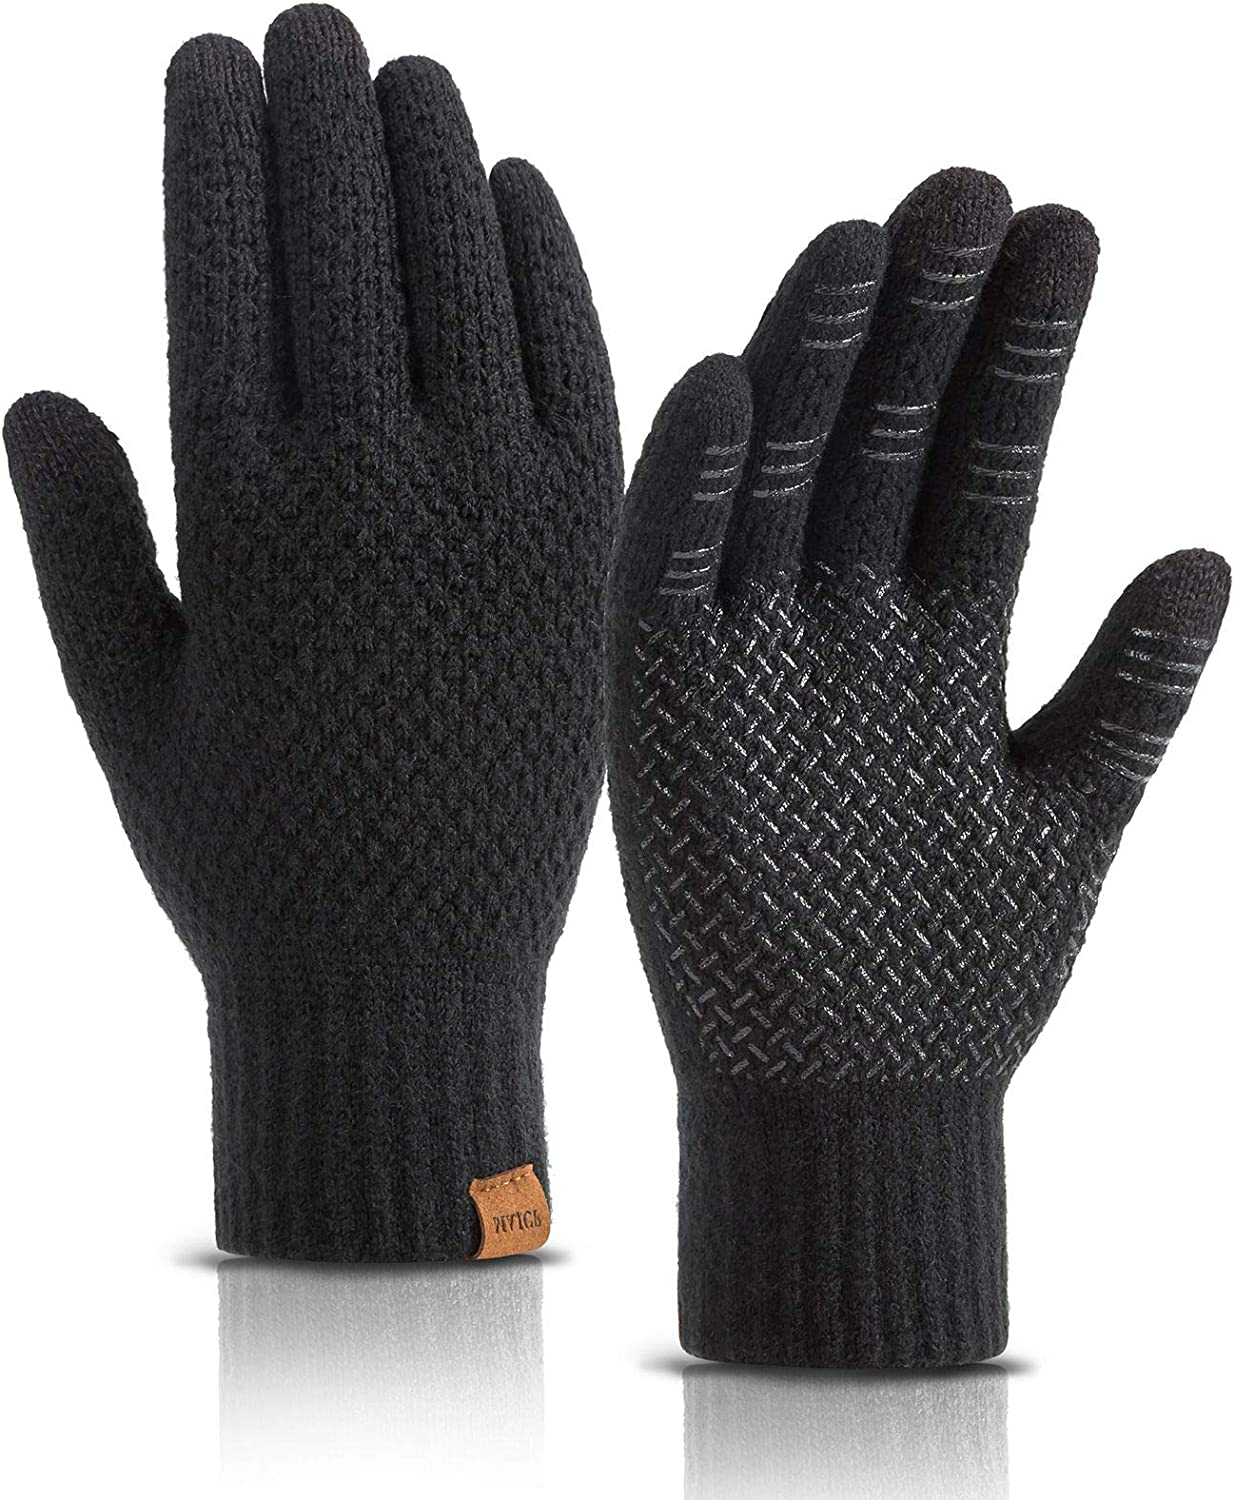 MAJCF Winter Gloves for Men Women,Touch Screen Gloves,Thermal Warm Cold Weather Gloves Fleece Lined